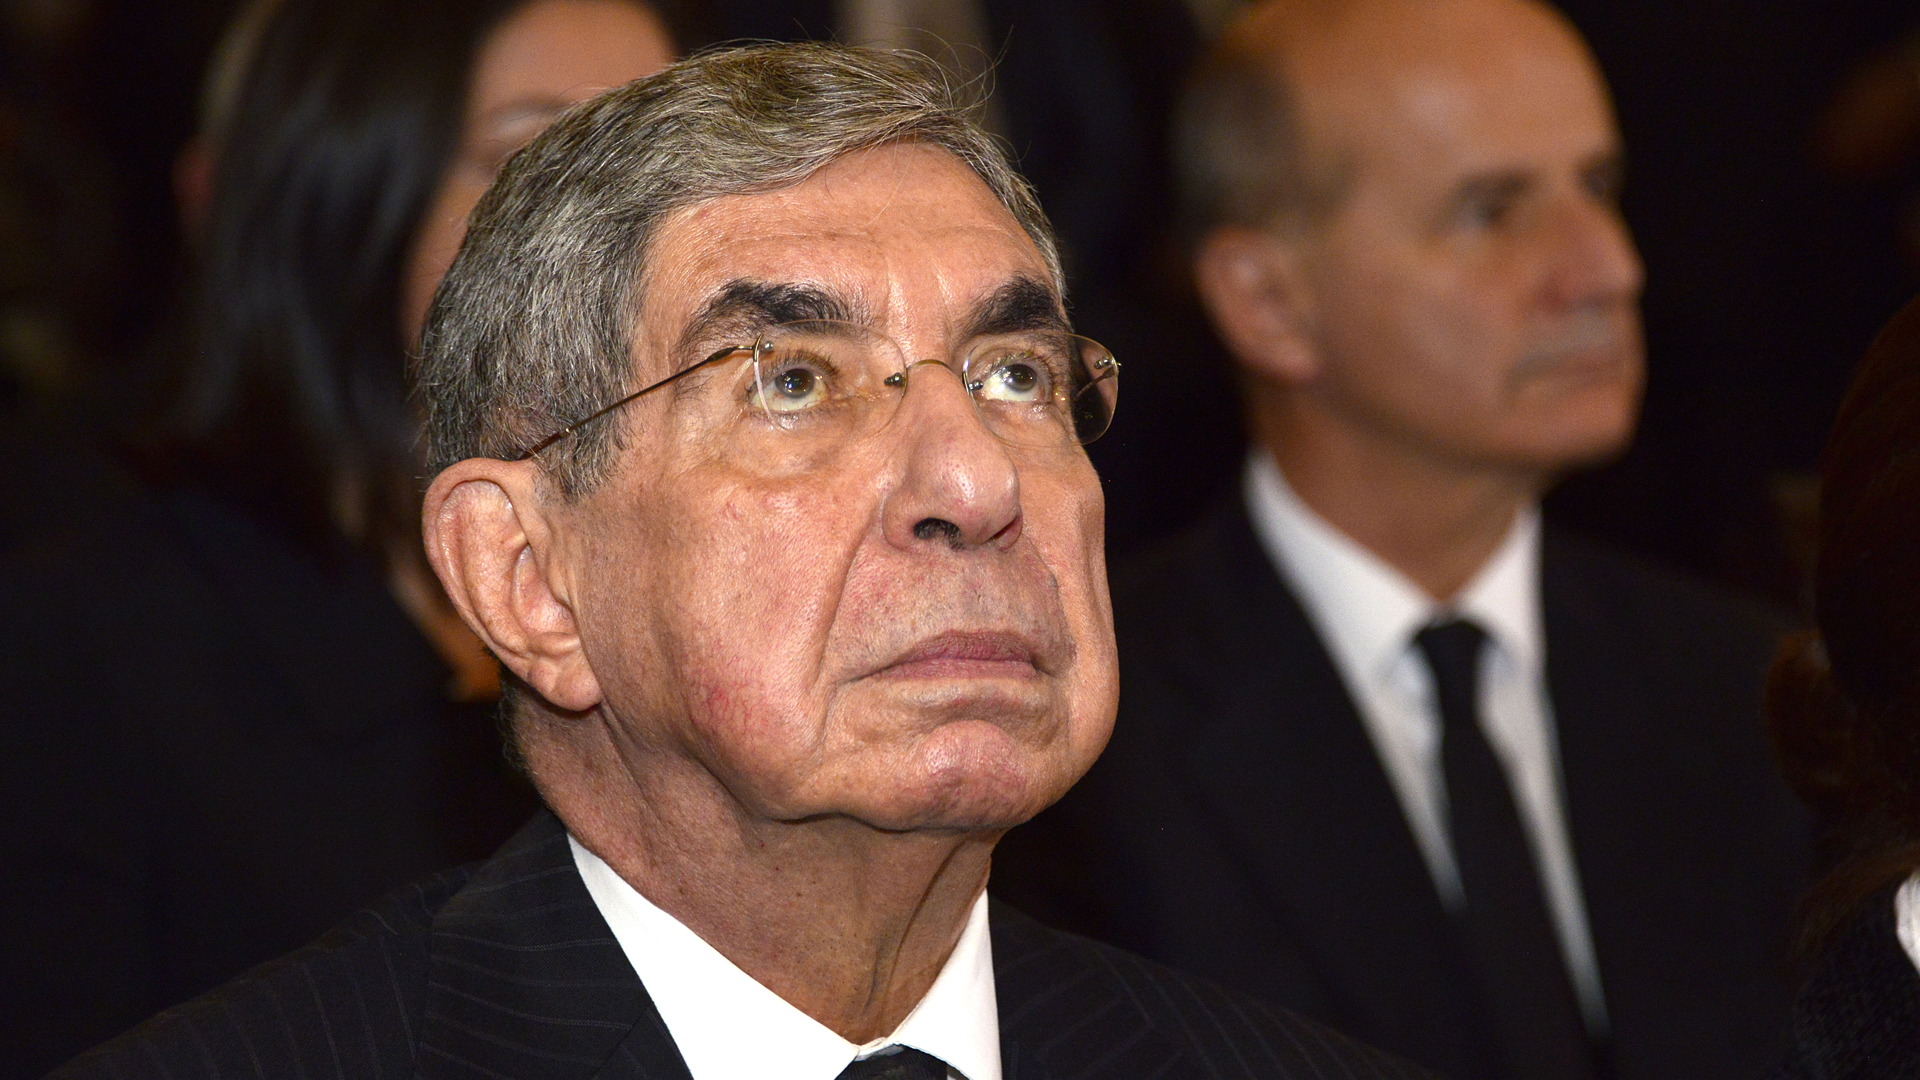 Nobel Peace Prize-winner and former Costa Rican president Oscar Arias Sanchez (1986-1990), (2006-2010) is seen during the funeral of former president Luis Alberto Monge (1982-1986) in the metropolitan cathedral of San Jose on Dec. 1, 2016.(Credit: EZEQUIEL BECERRA/AFP/Getty Images)